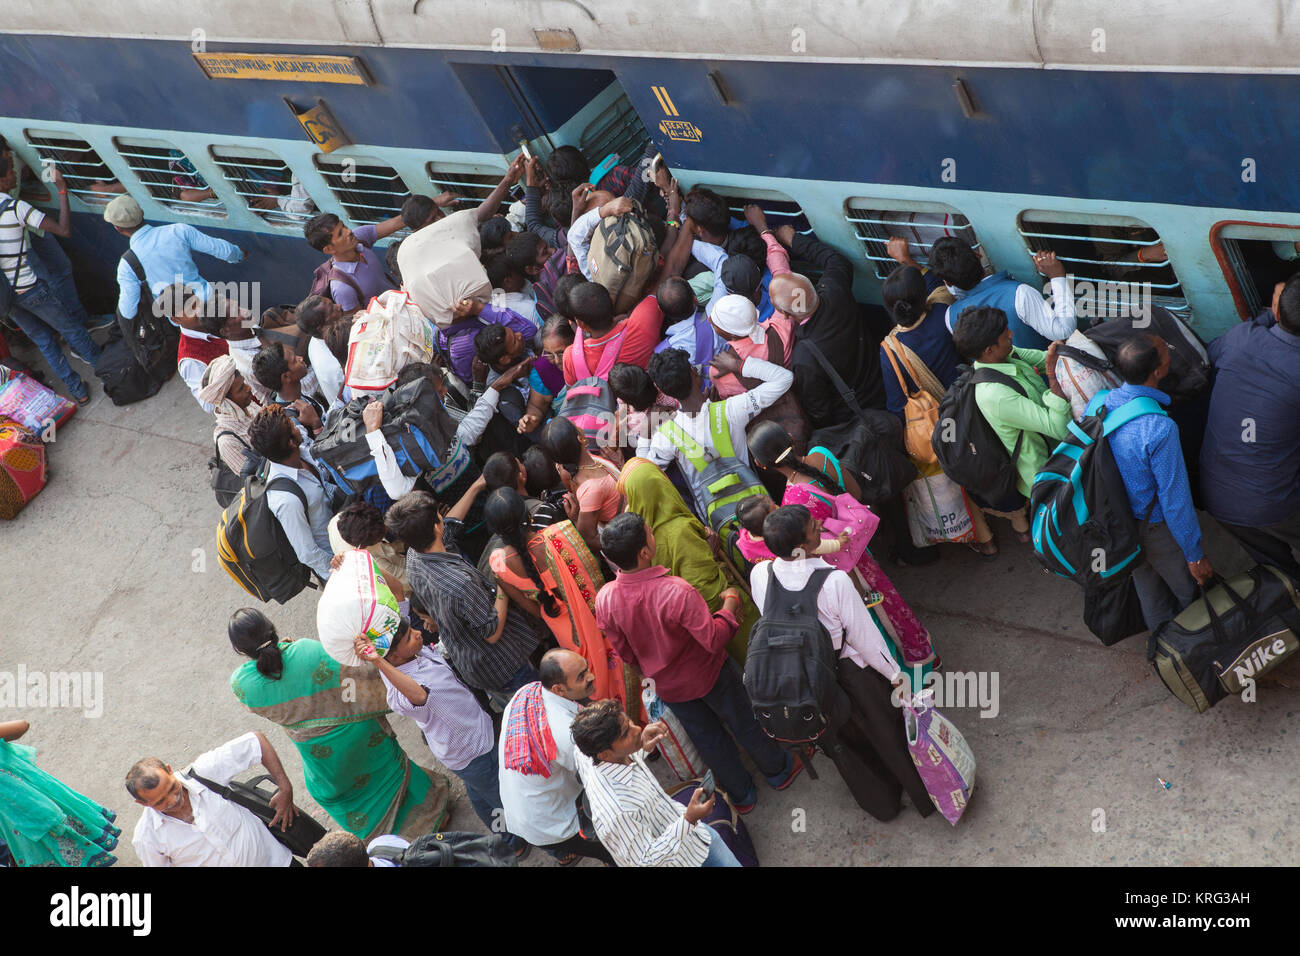 Passengers fight to scramble aboard a train at the railway station in Gaya, India - Stock Image